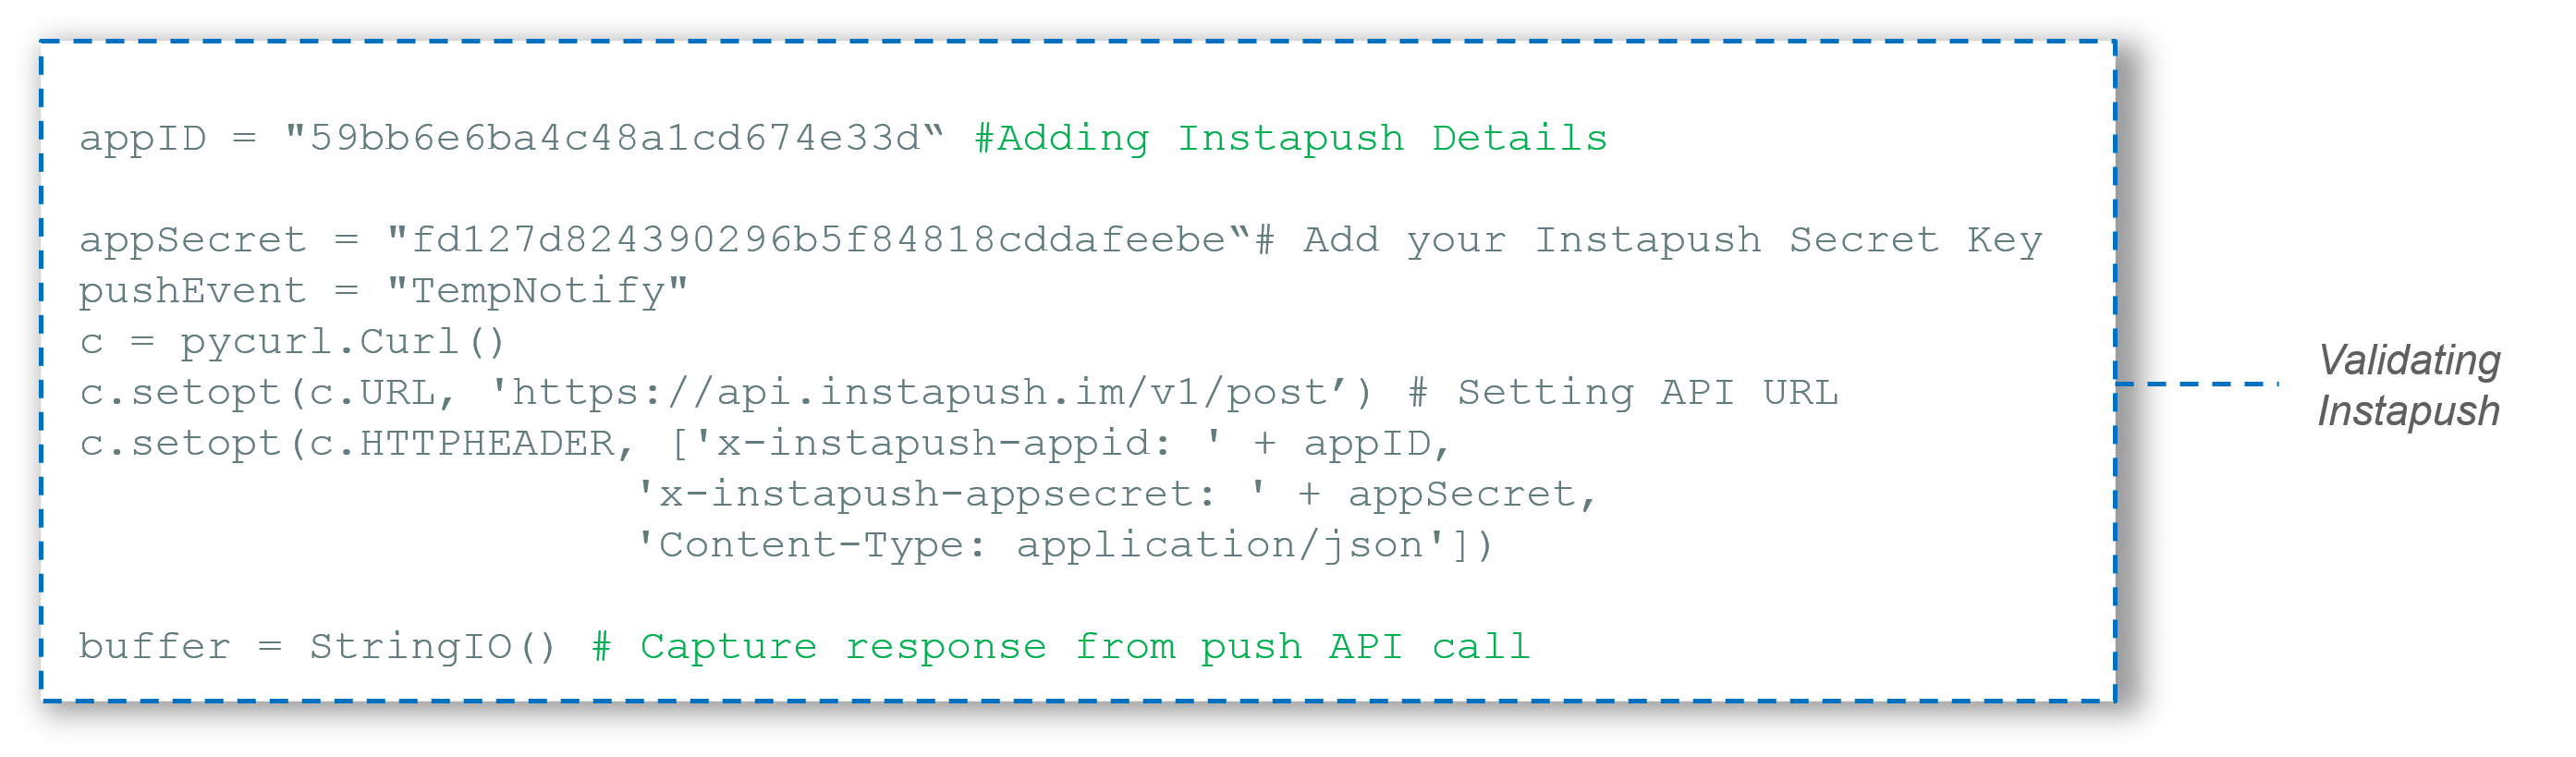 Passing Details of InstaPush - IoT Tutorial - Edureka